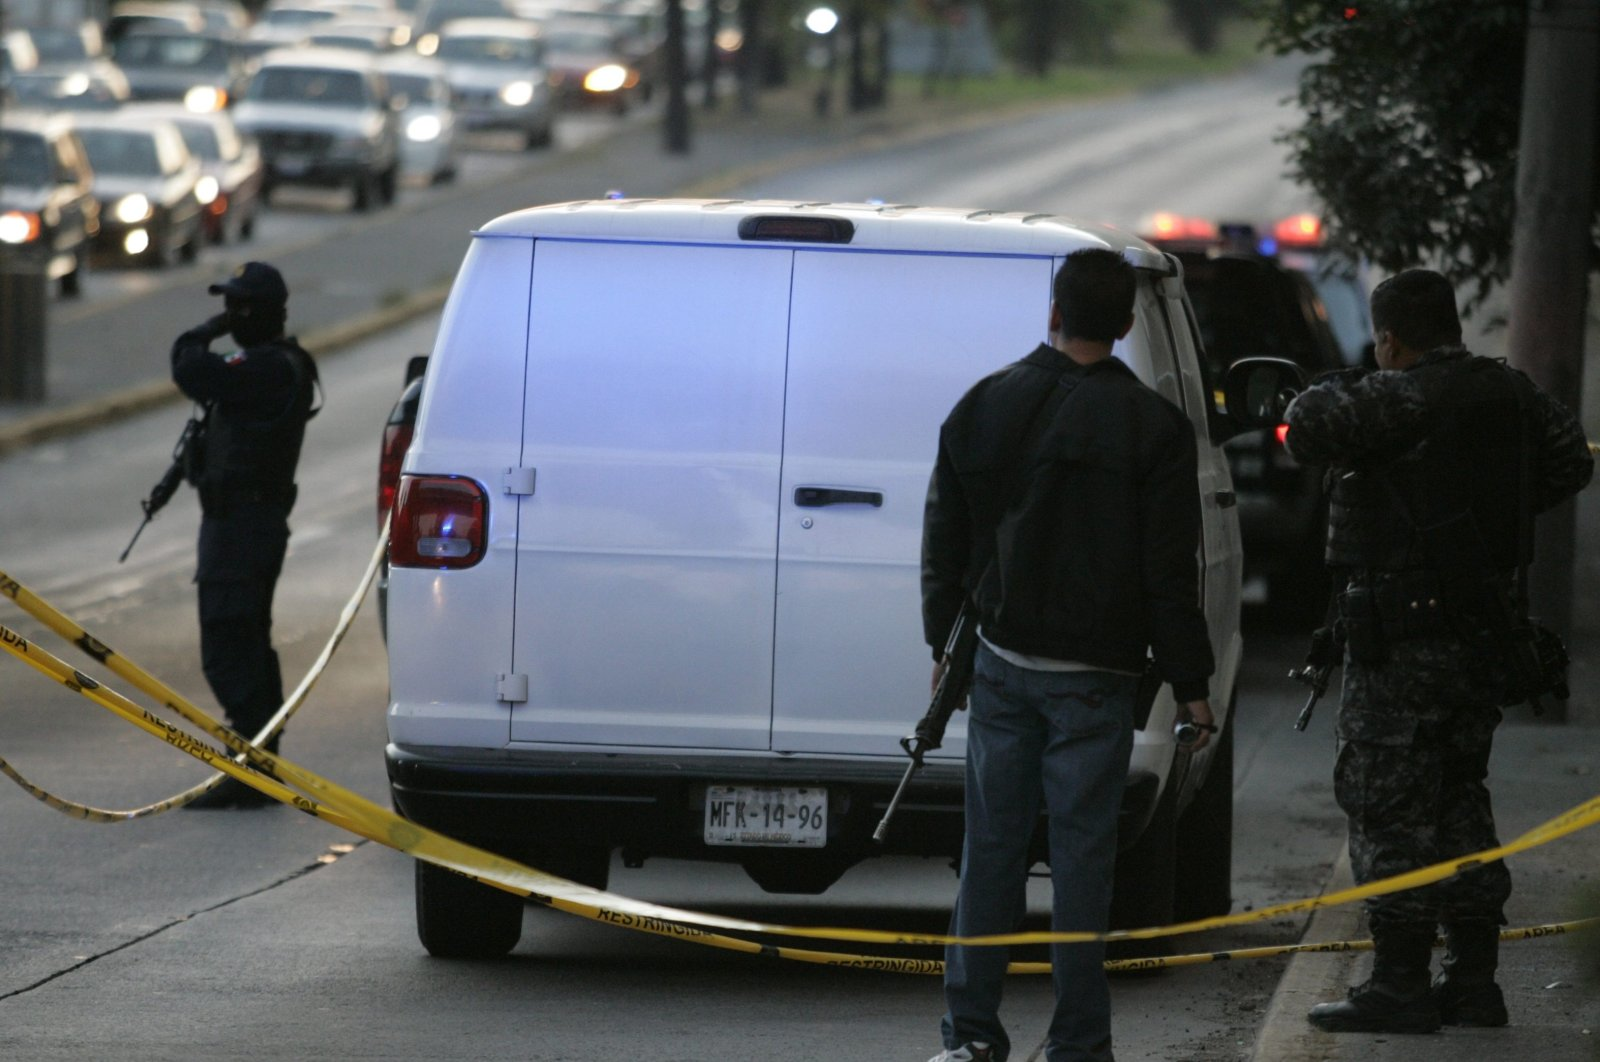 Police stand near a truck with several dead bodies inside in this file photo, in Guadalajara, Mexico, Nov. 24, 2011. (Reuters Photo)